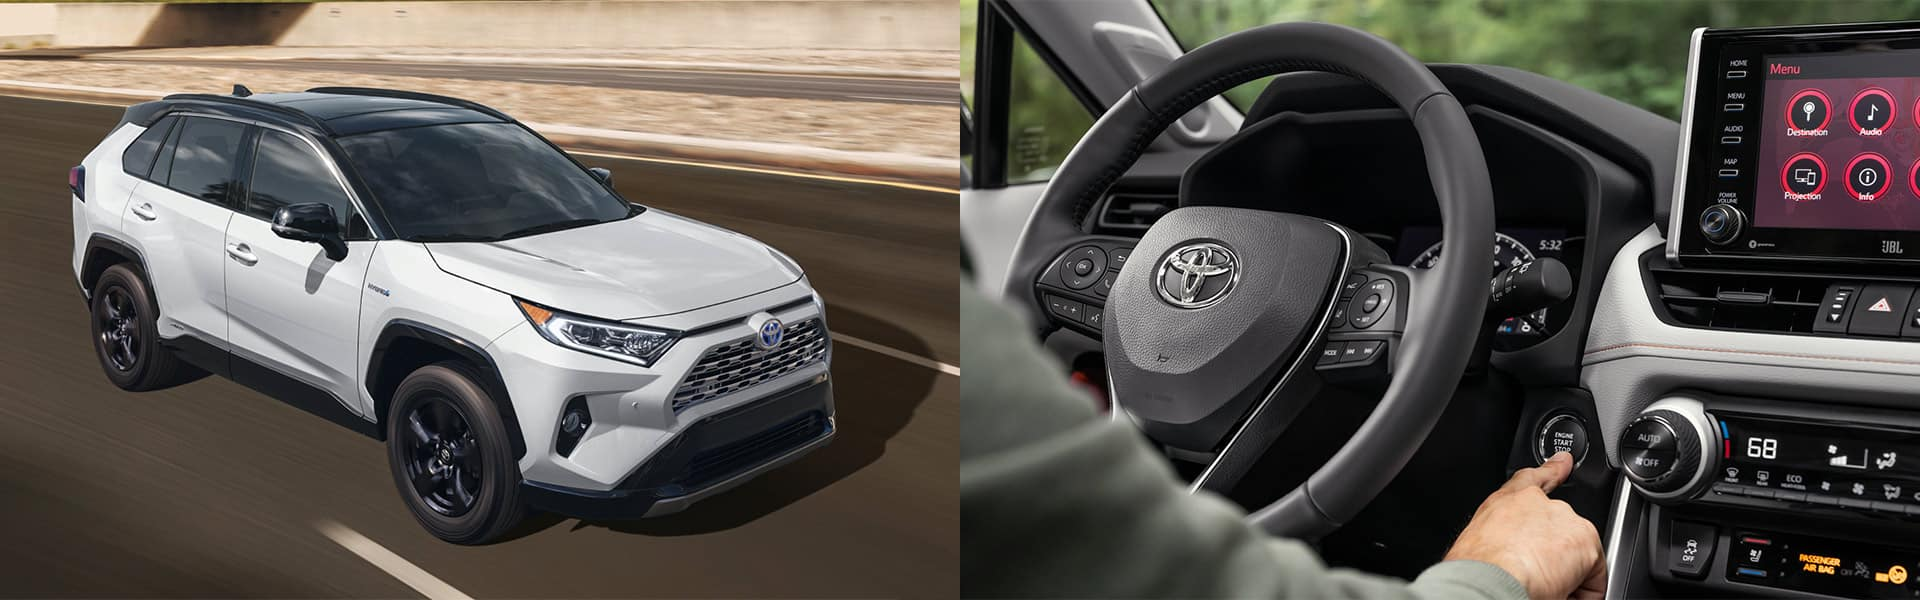 White Toyota Rav4 Hybrid driving on a highway with brick around on side. Next to Rav4 Hybrid with black interior